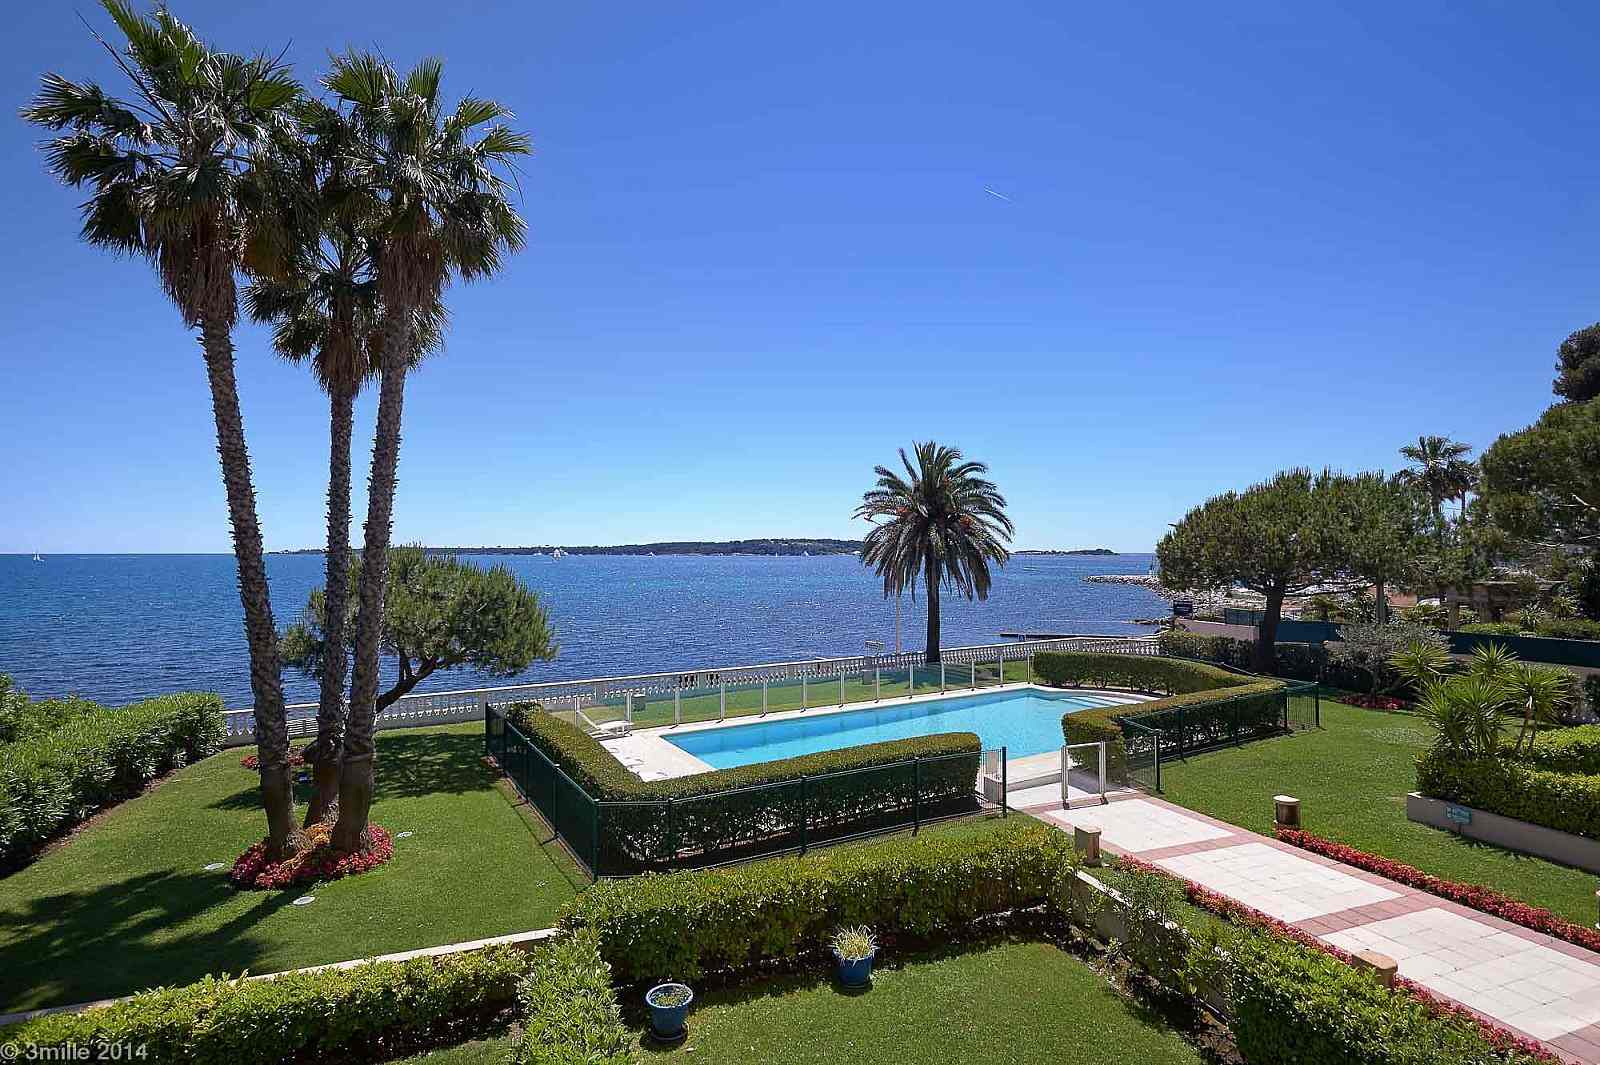 SPLENDID HOLIDAY RENTAL APARTMENT IN CANNES,ON THE SEA FRONT!!!